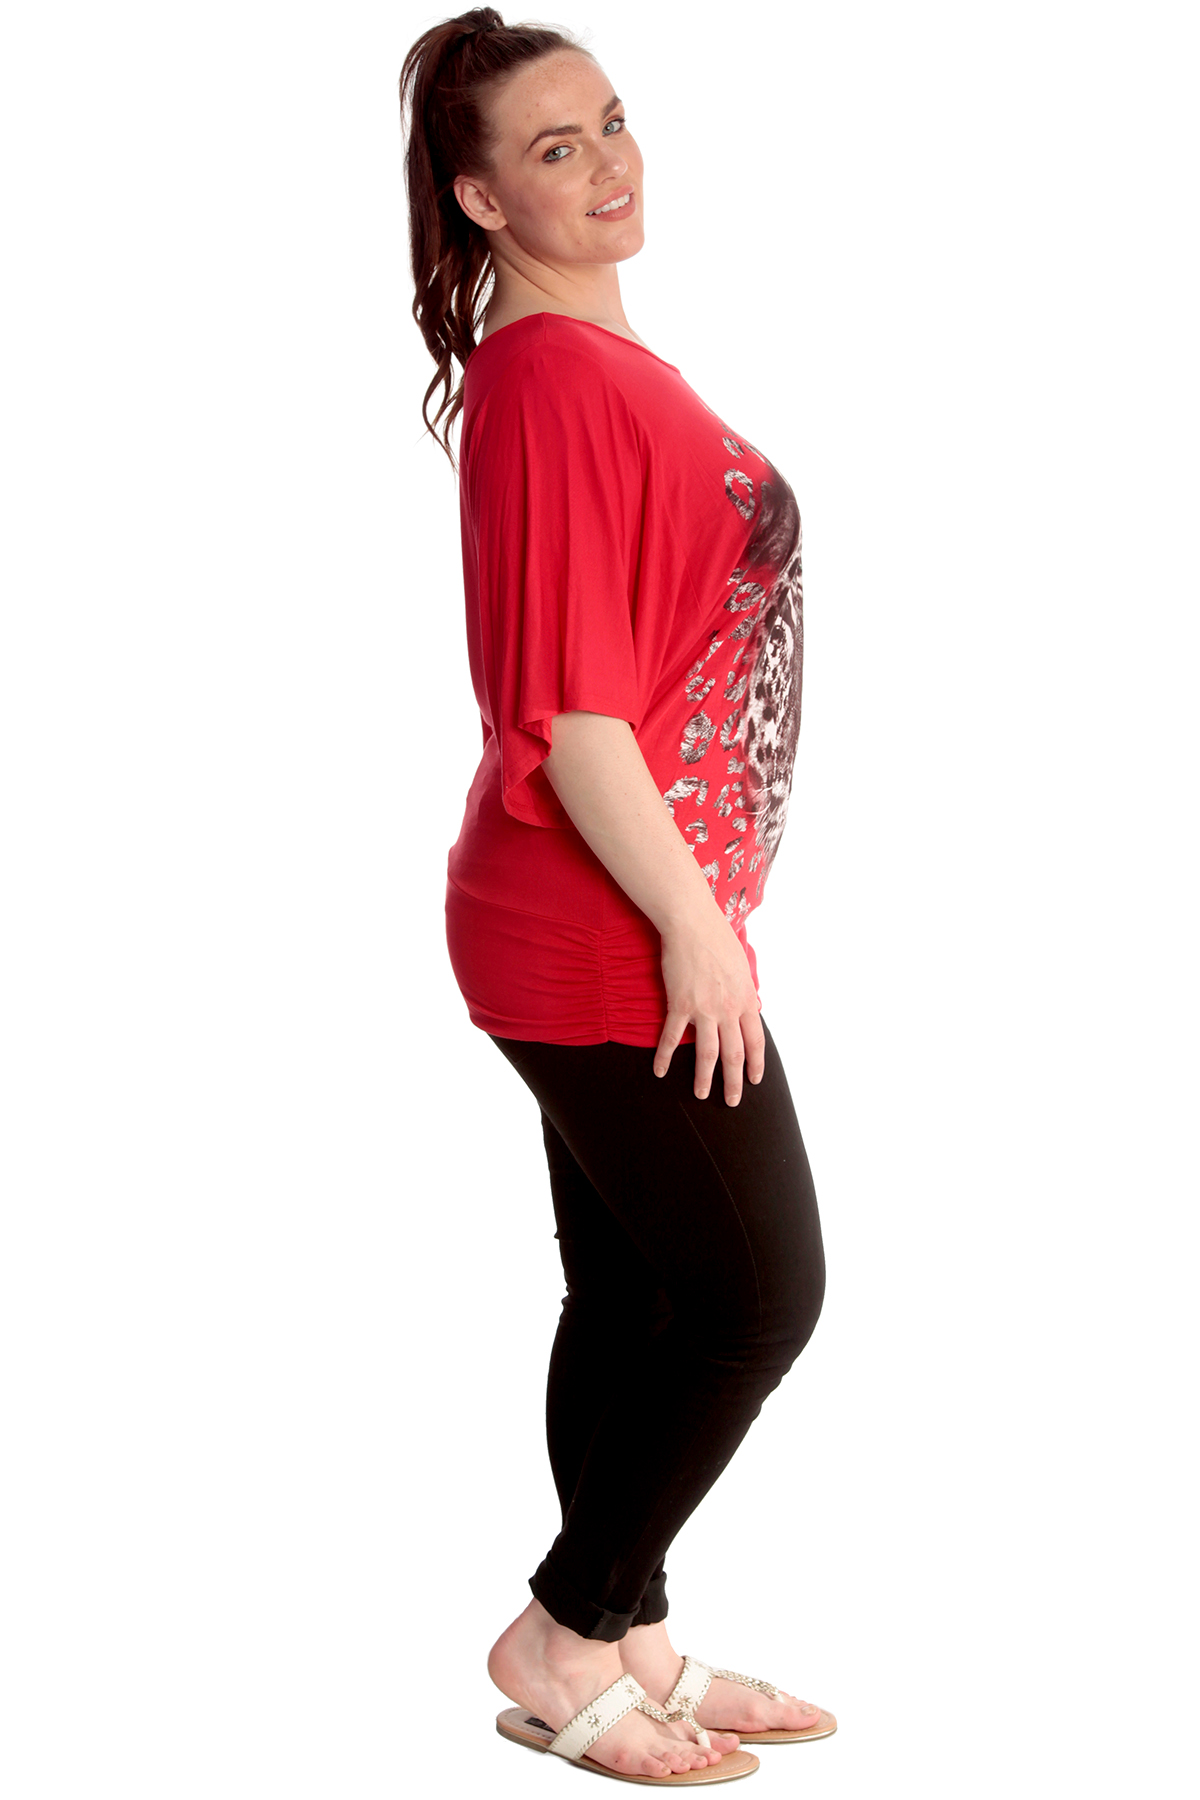 New Womens Top Plus Size Ladies Batwing Shirt Tiger Print Front Glitter Nouvelle